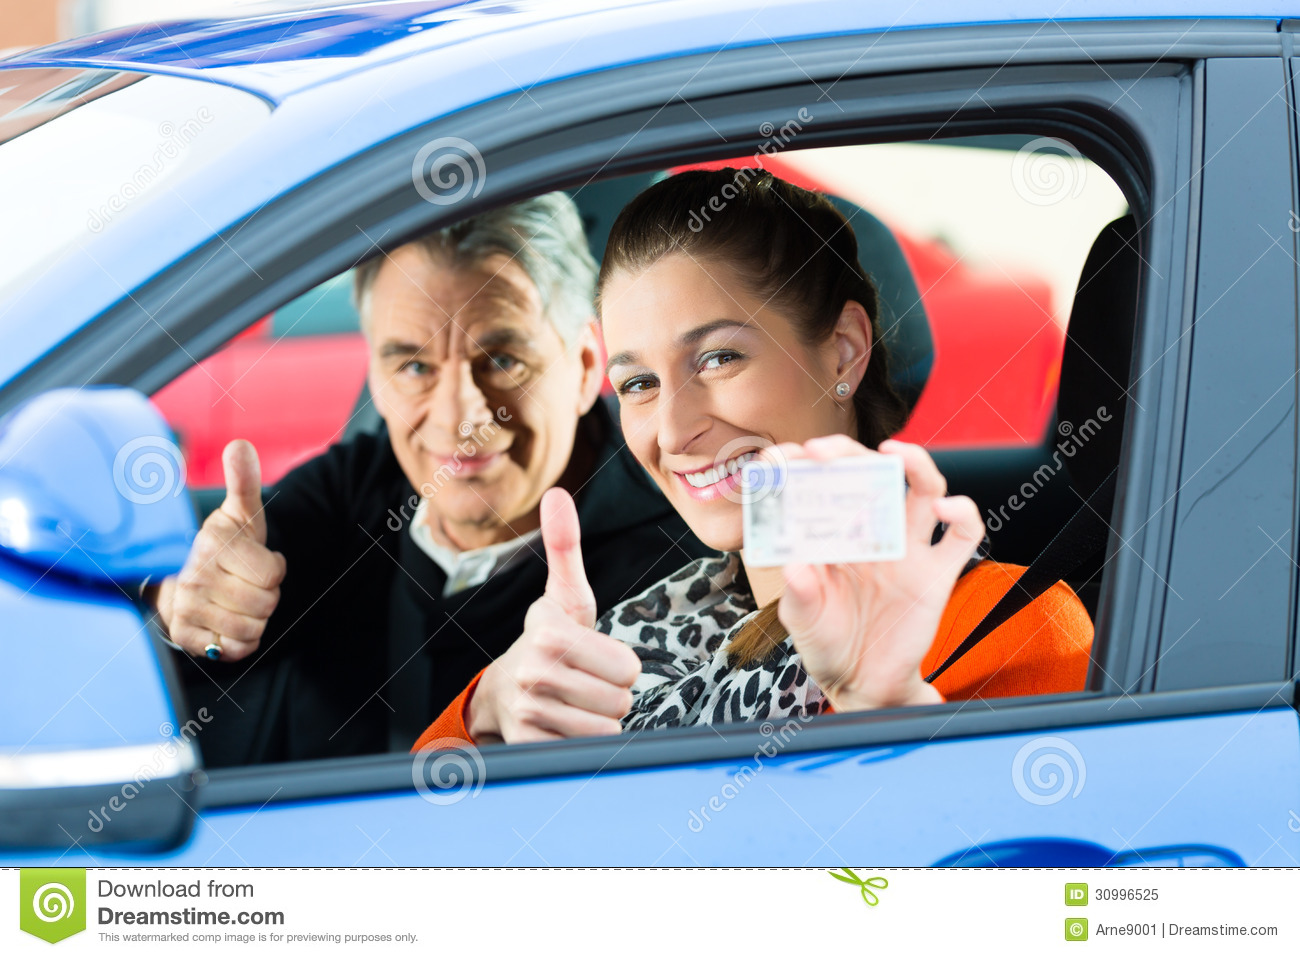 Young Woman At Driving Lesson Stock Image - Image of proud ...